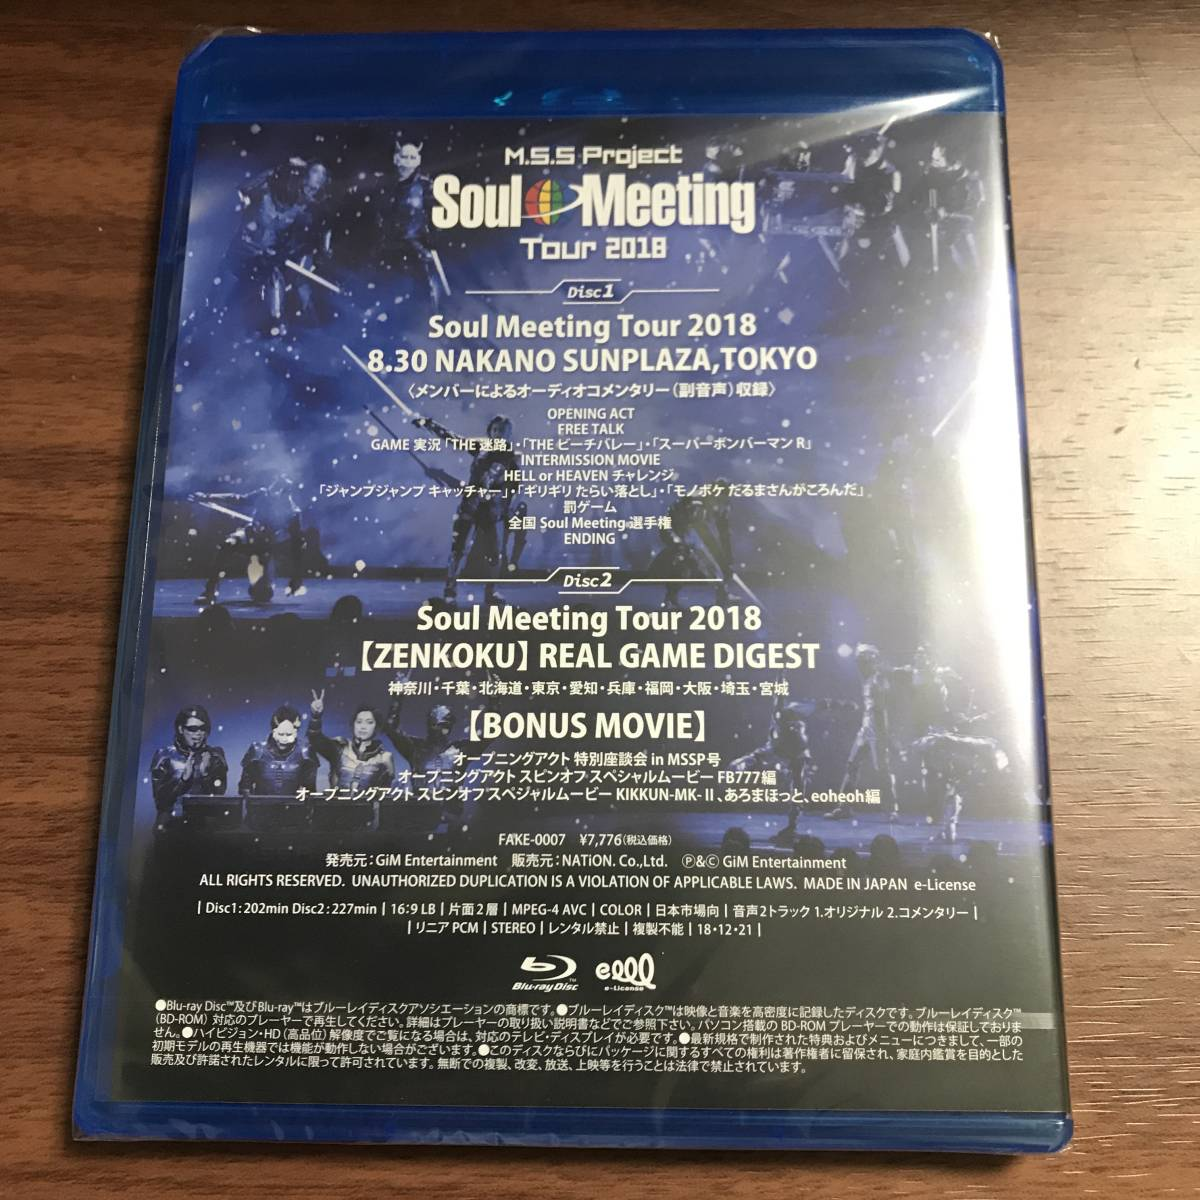 M.S.S Project~Soul Meeting Tour 2018~ Blu-ray [2枚組] MSSP SMT2018_画像2